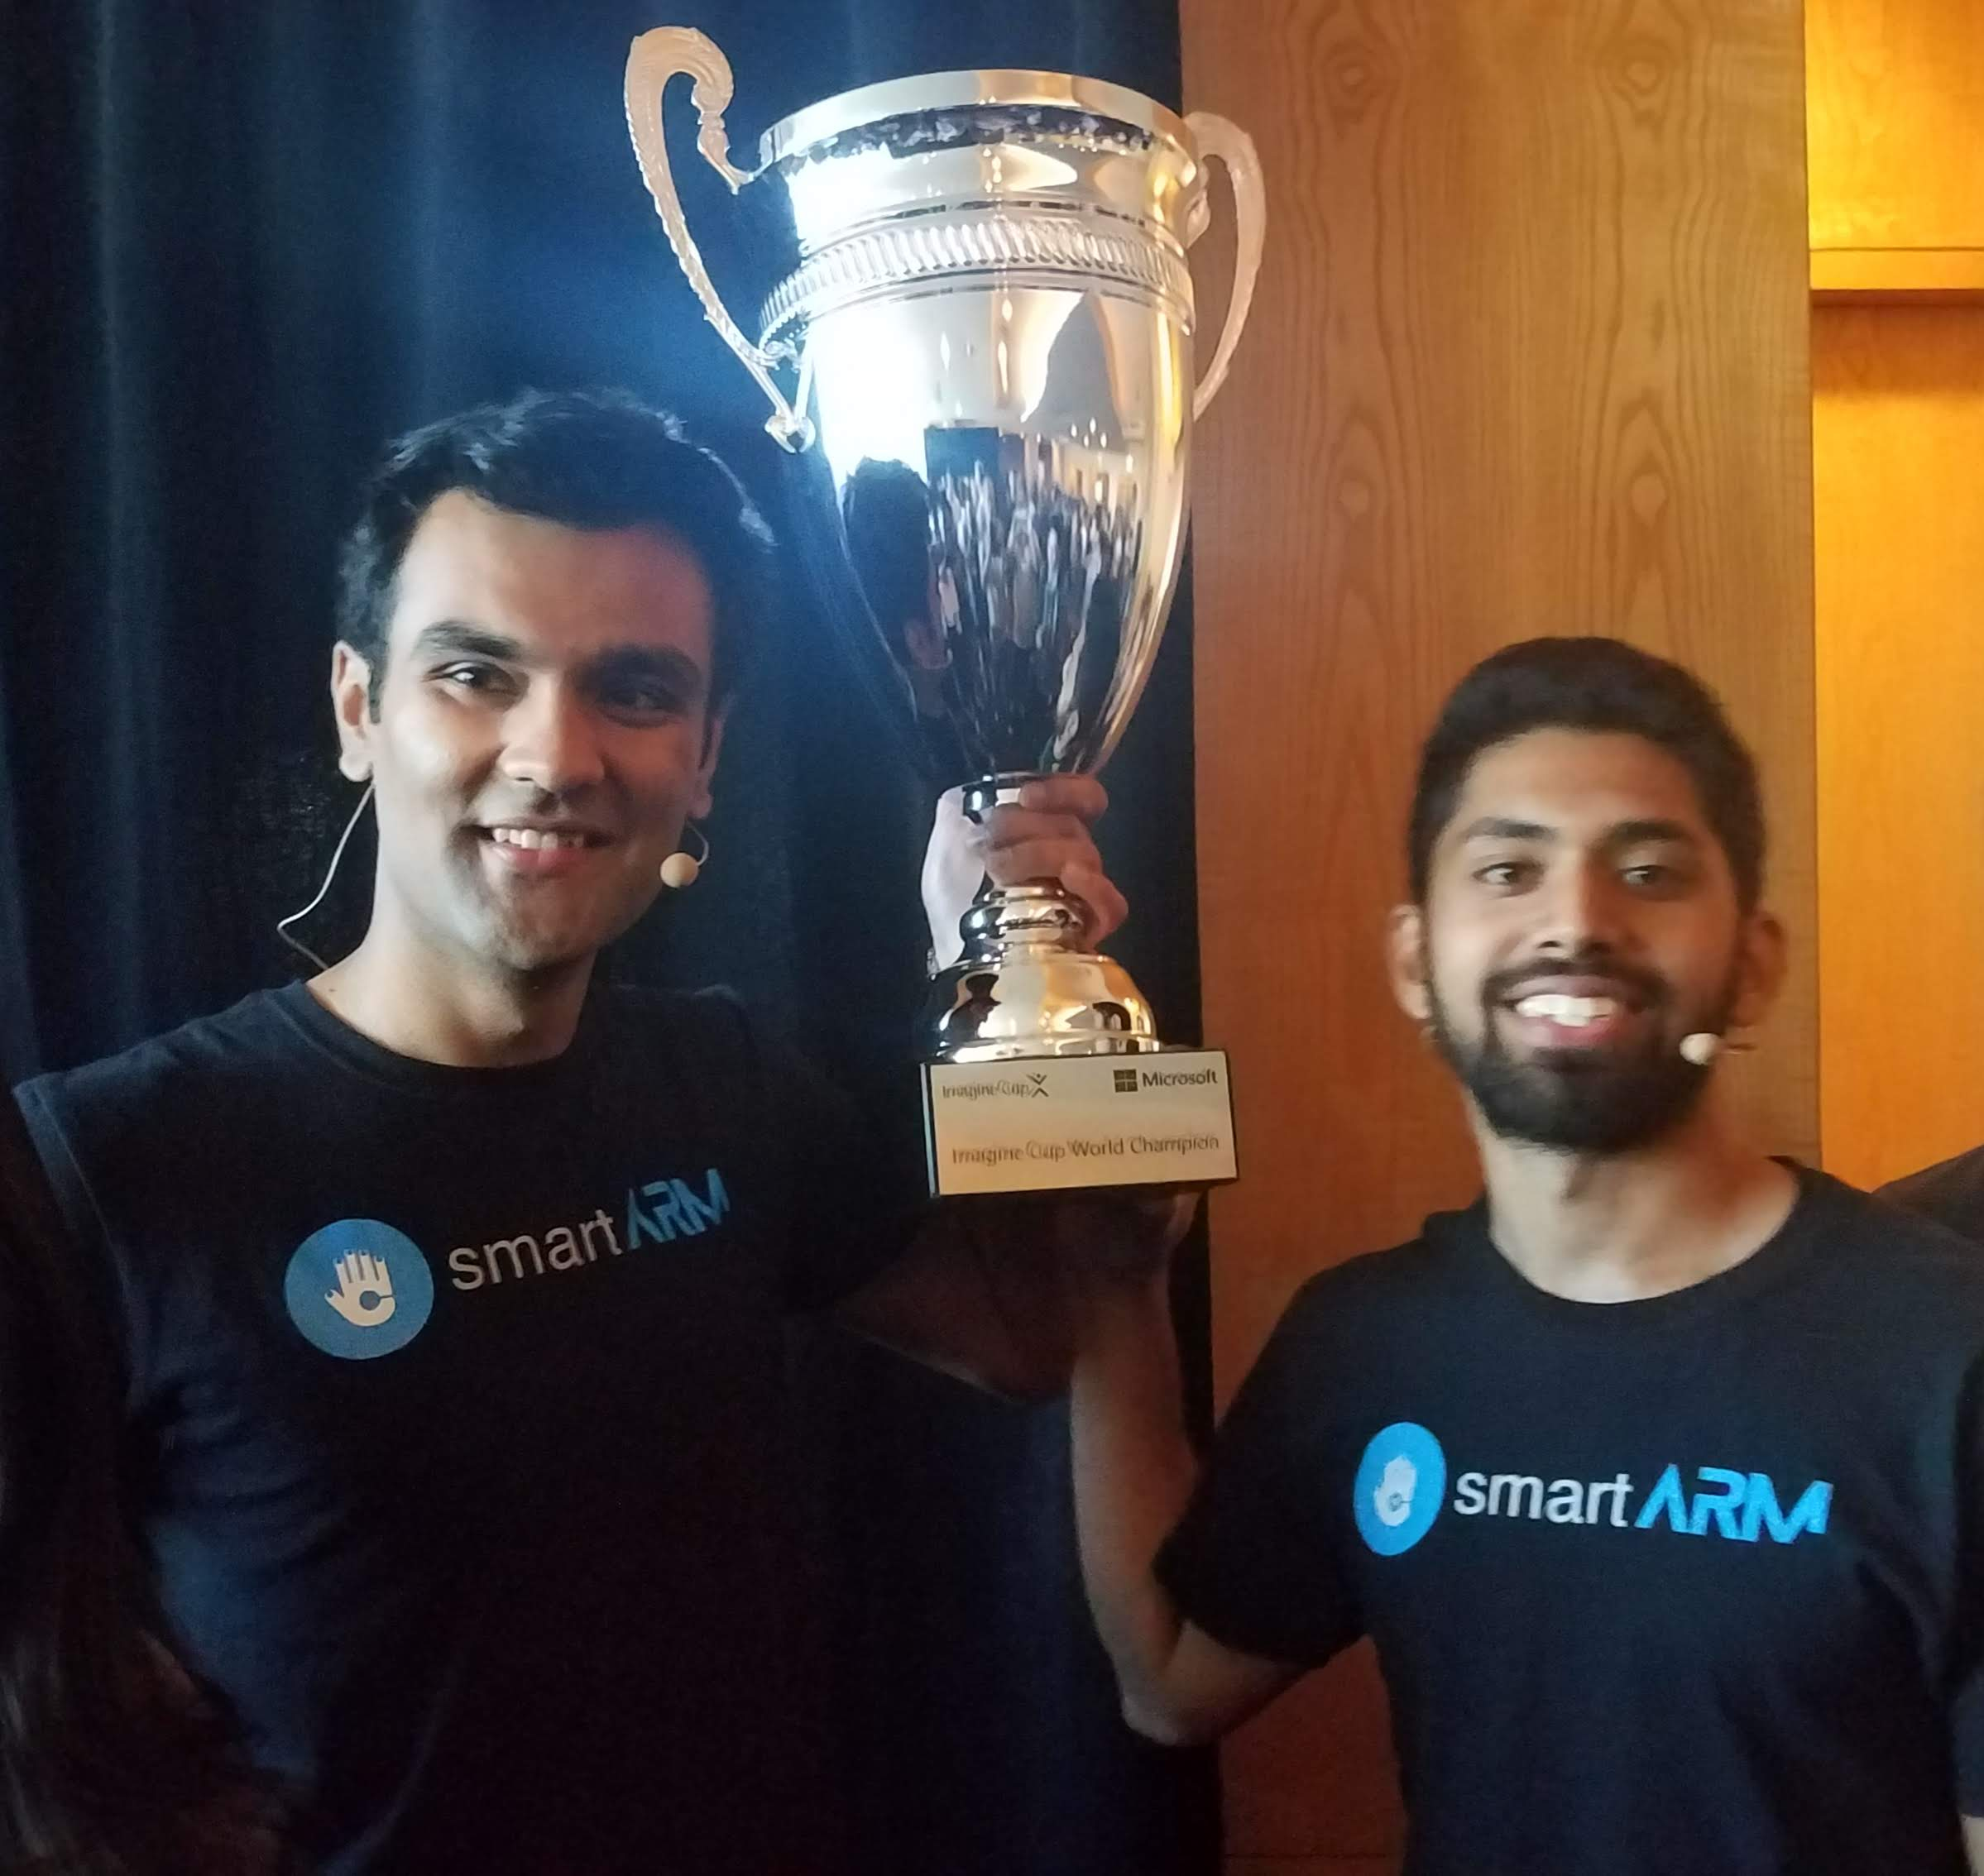 Microsoft Imagine Cup Winner: smartARM from Canada